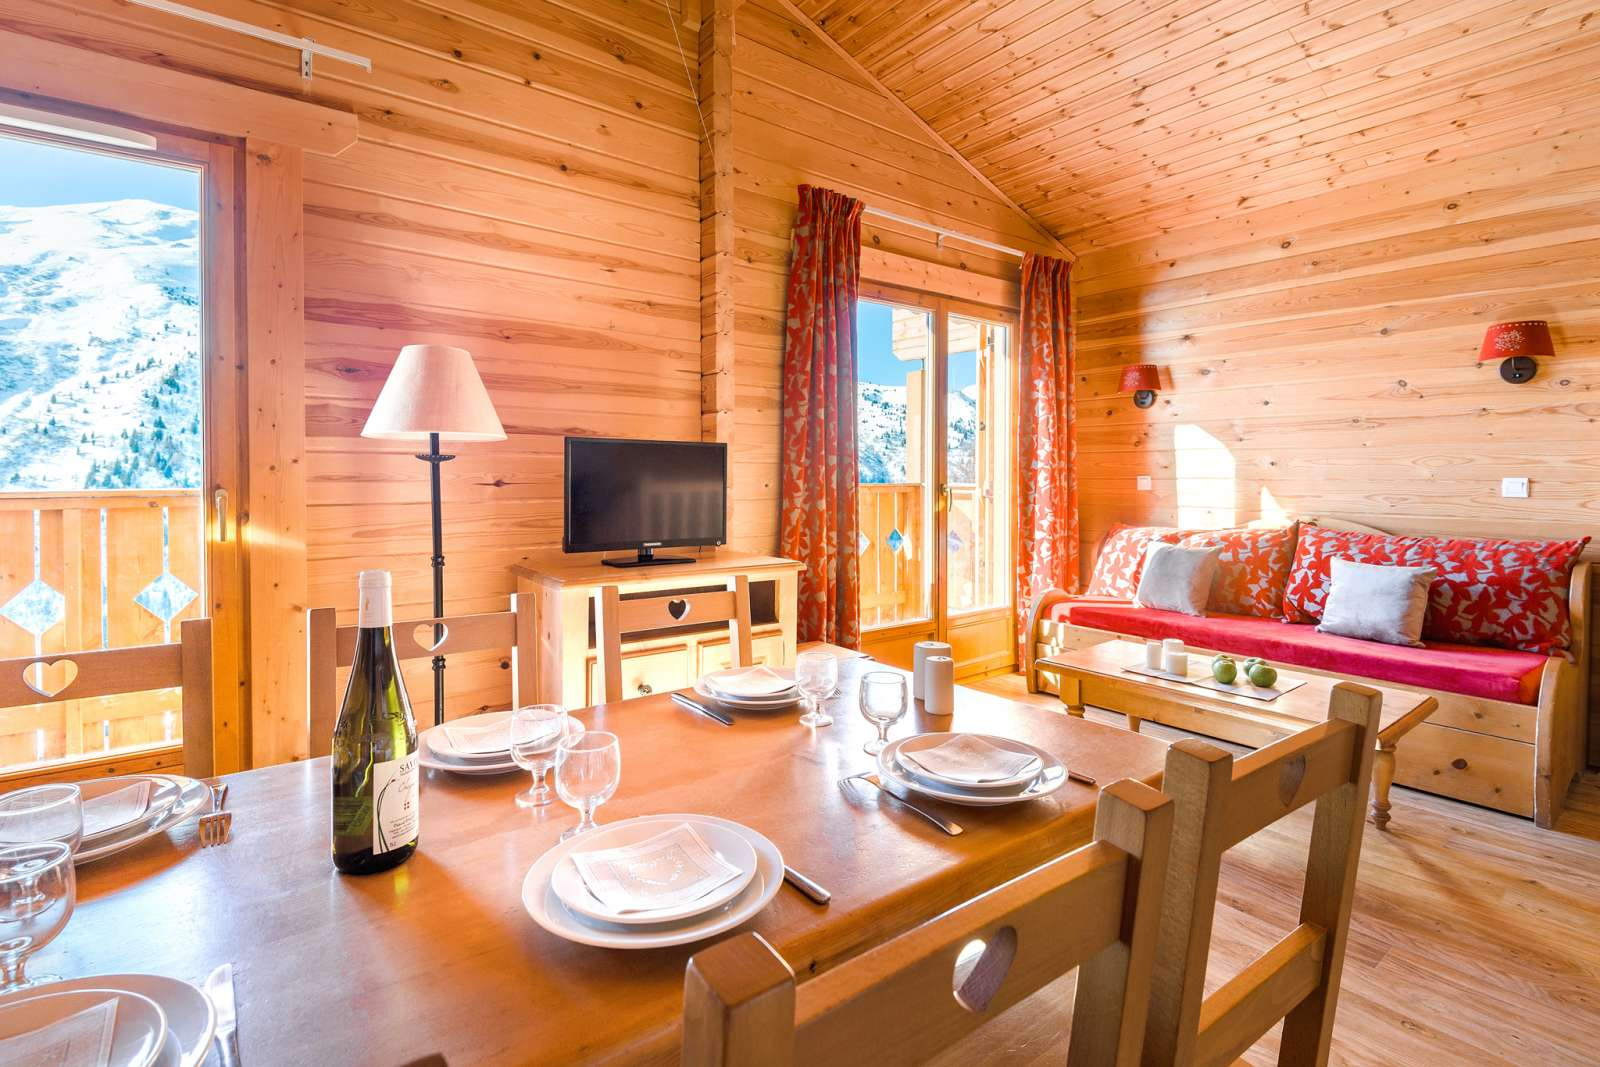 Location Valloire 10 Personnes Résidence Le Grand Panorama Ii Location Vacances